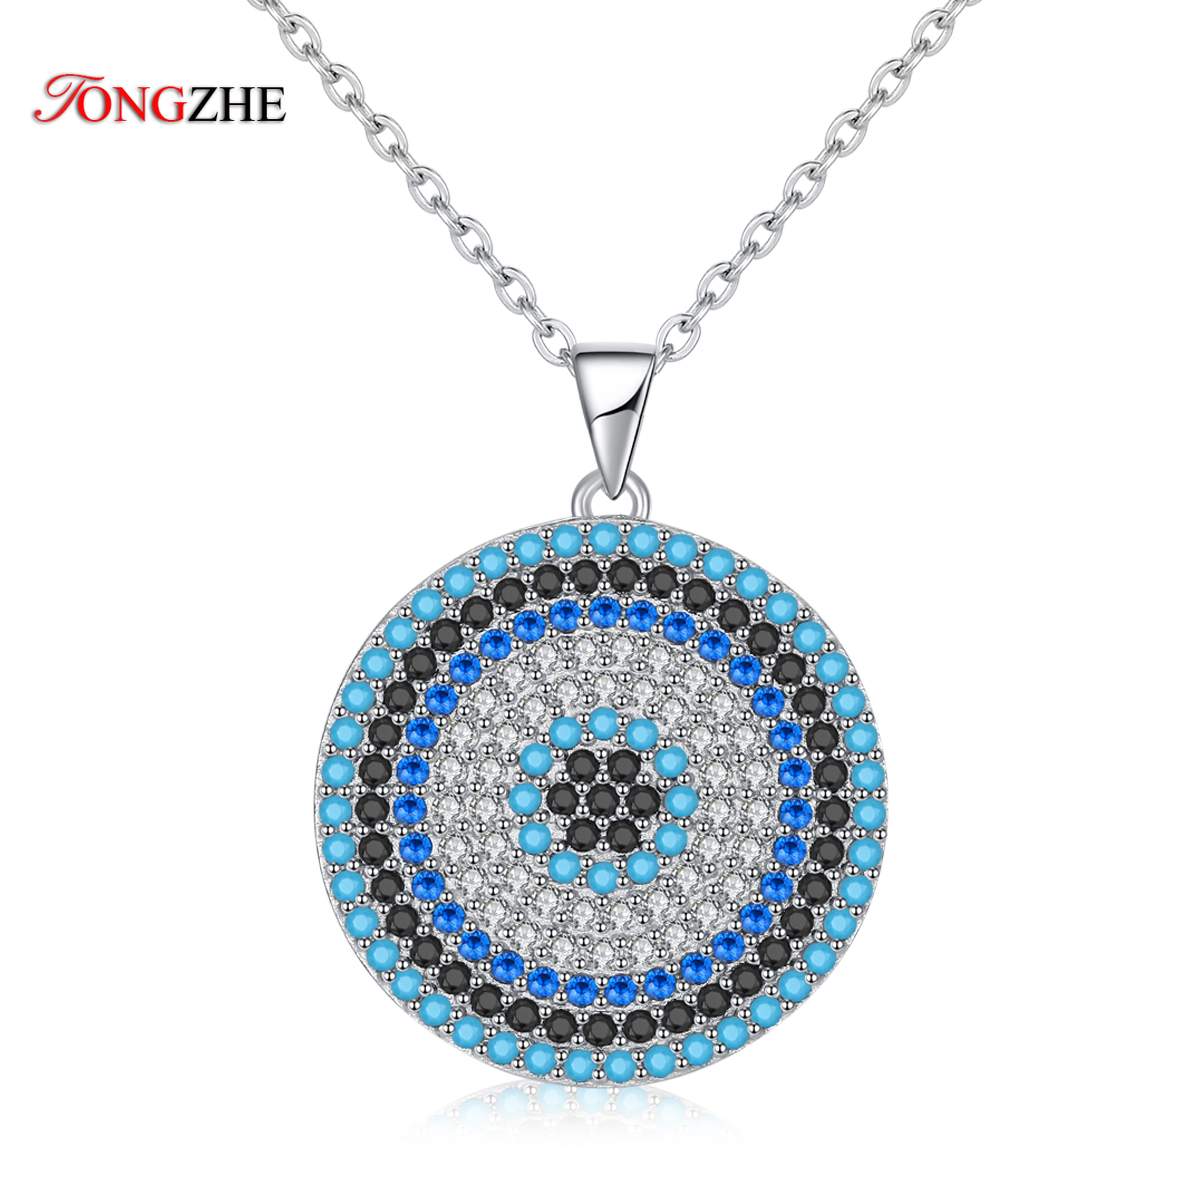 TONGZHE Sterling Silver 925 Necklaces Jewelry Round CZ Turkish Evil Eye Necklace Women Necklace Pendant Fine Jewelry Kolye Sale